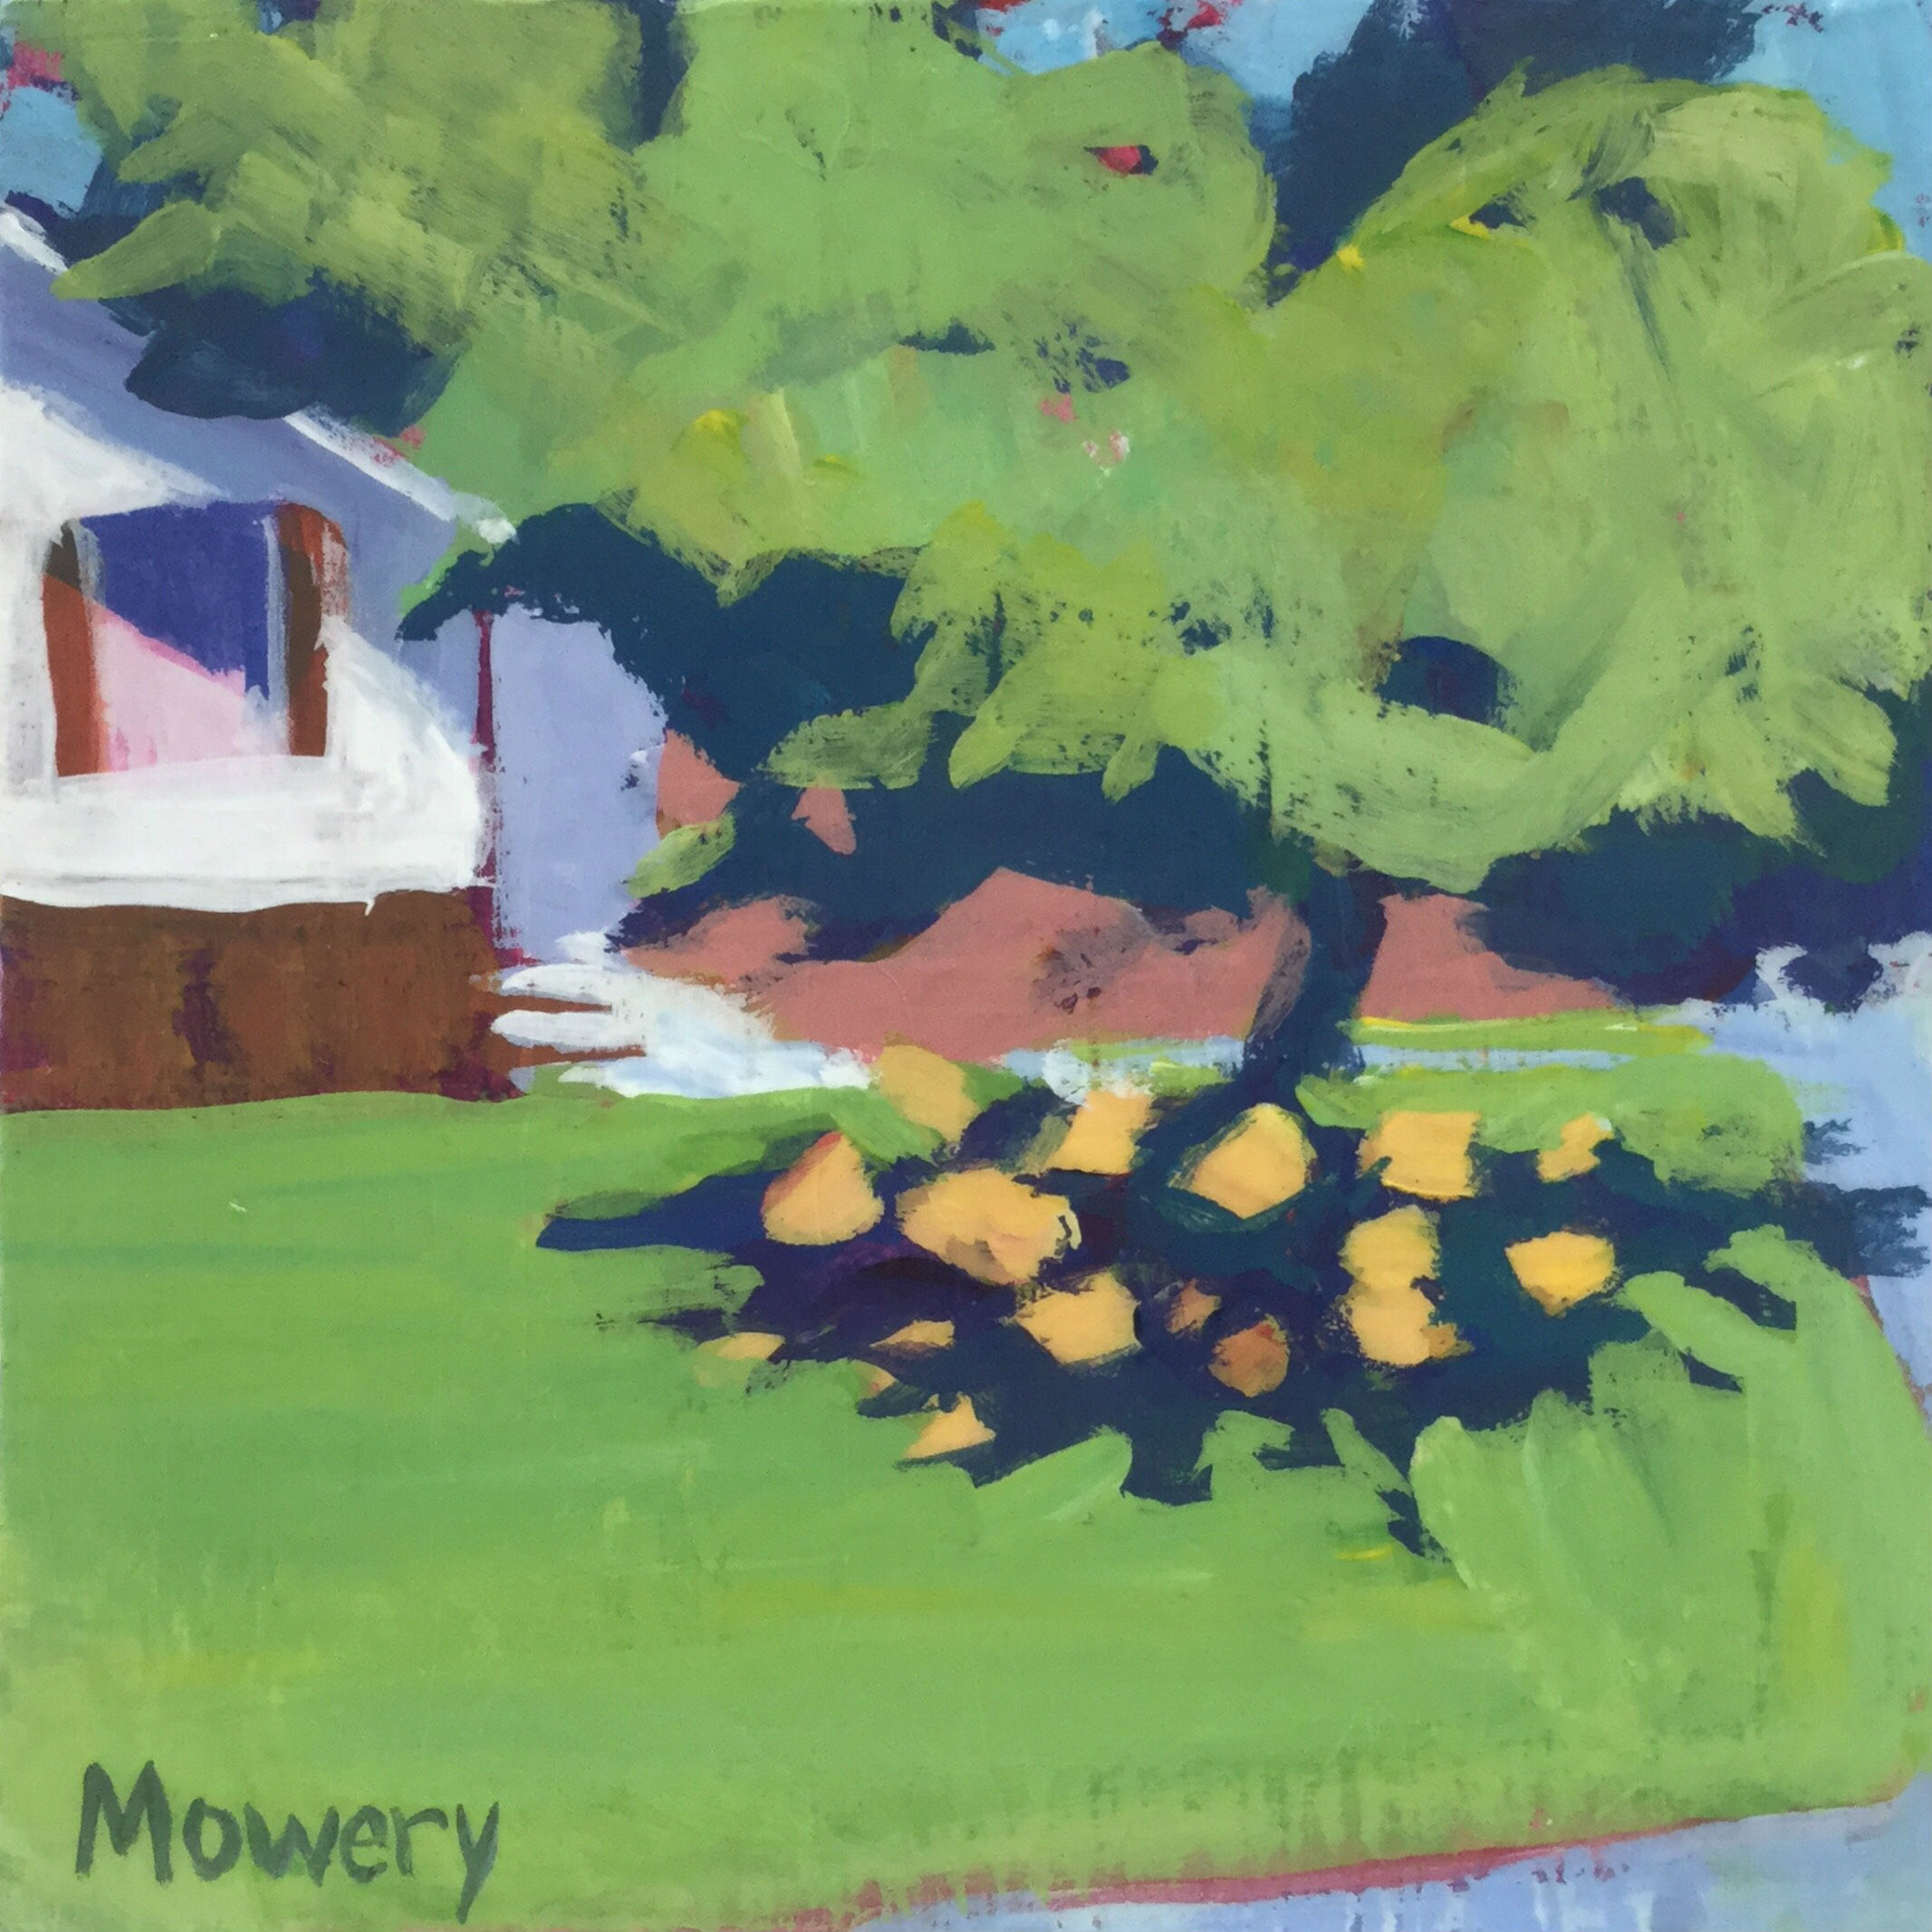 This is an acrylic painting of a flower bed full of day lilies under a cherry tree by artist Barb Mowery.